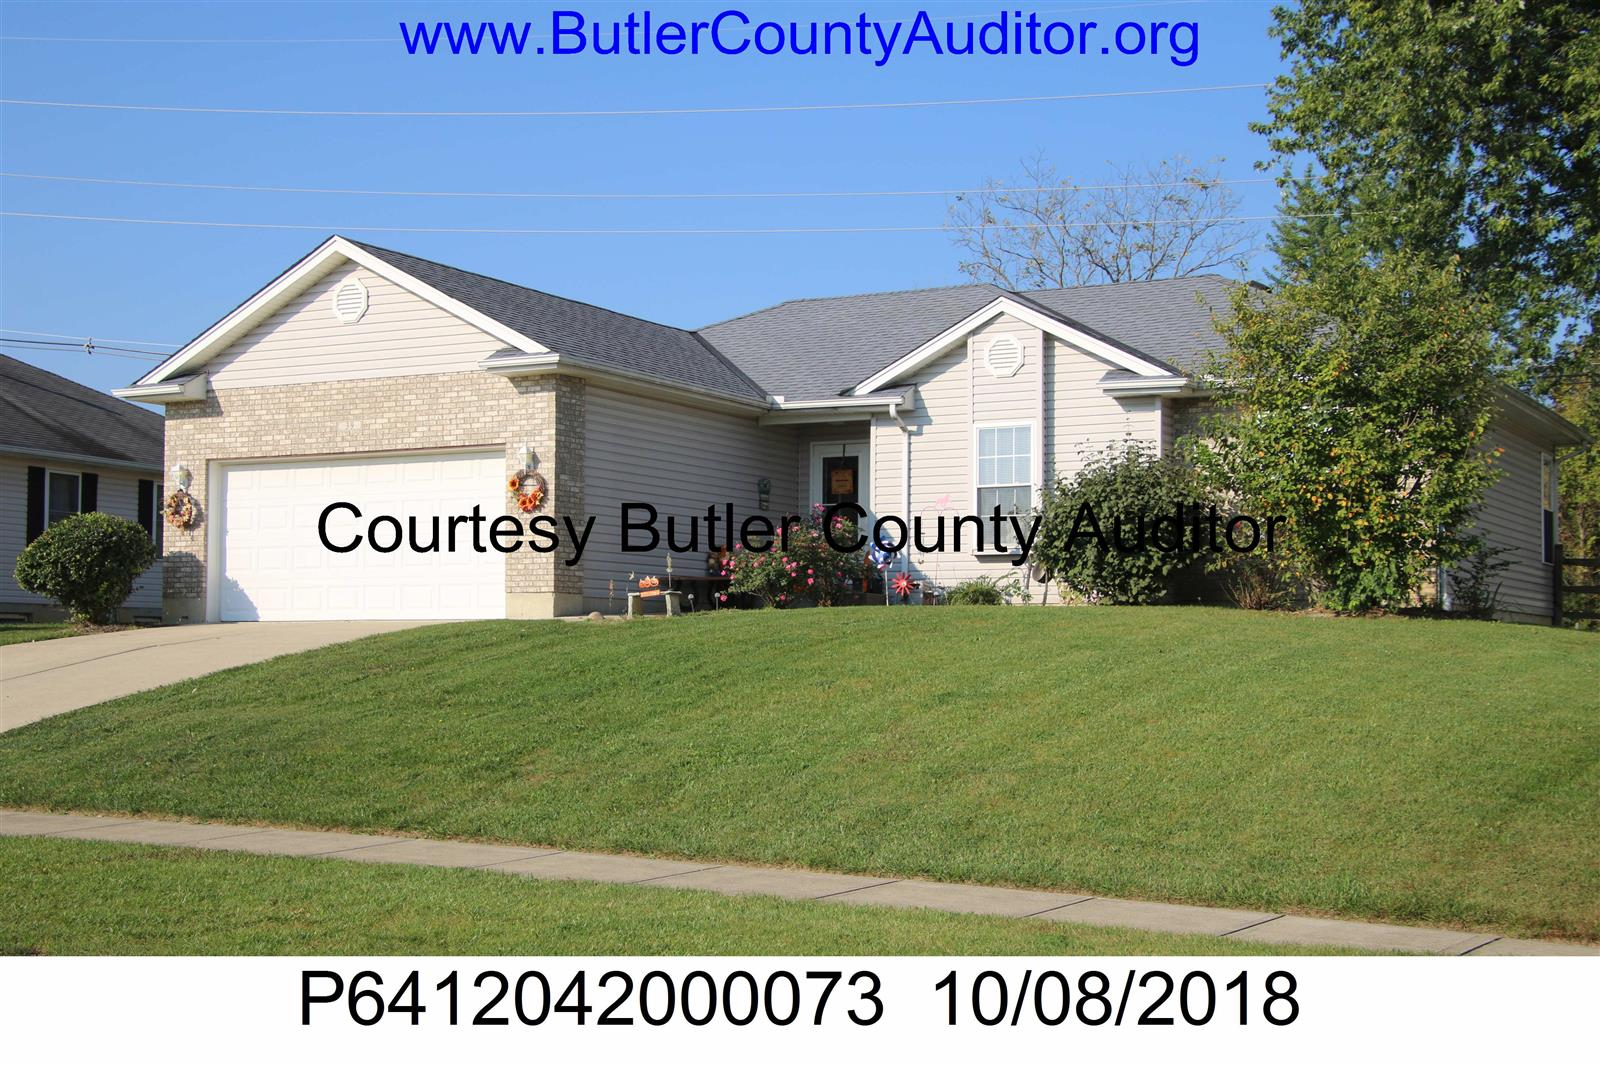 39 Thornhill Drive, Hamilton, OH 45013 - Real Estate For